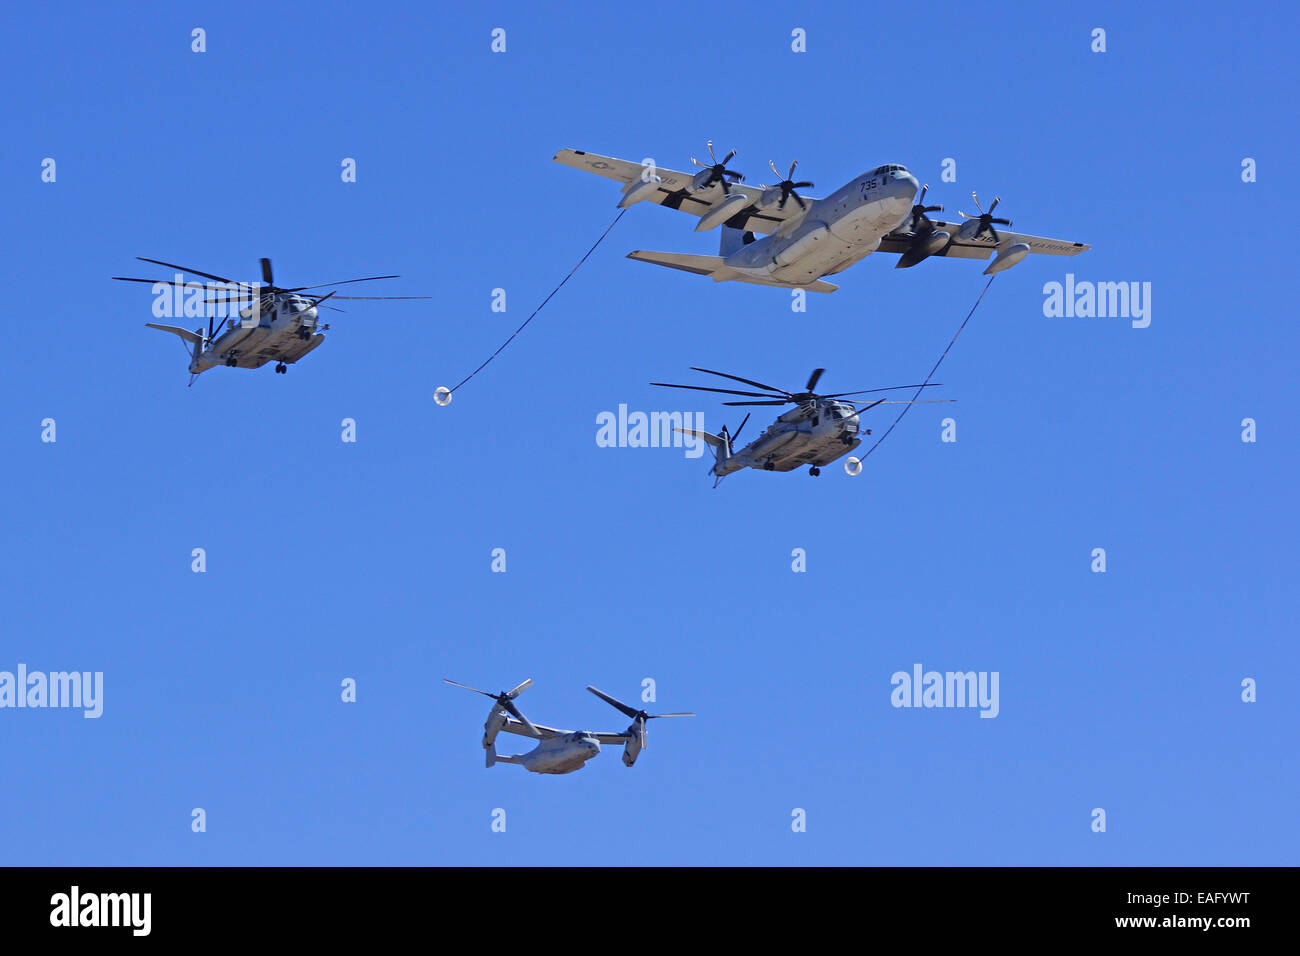 C-130 Refueling CH-53 Super Stallion and MV-22 Osprey at the 2014 Miramar Air Show - Stock Image